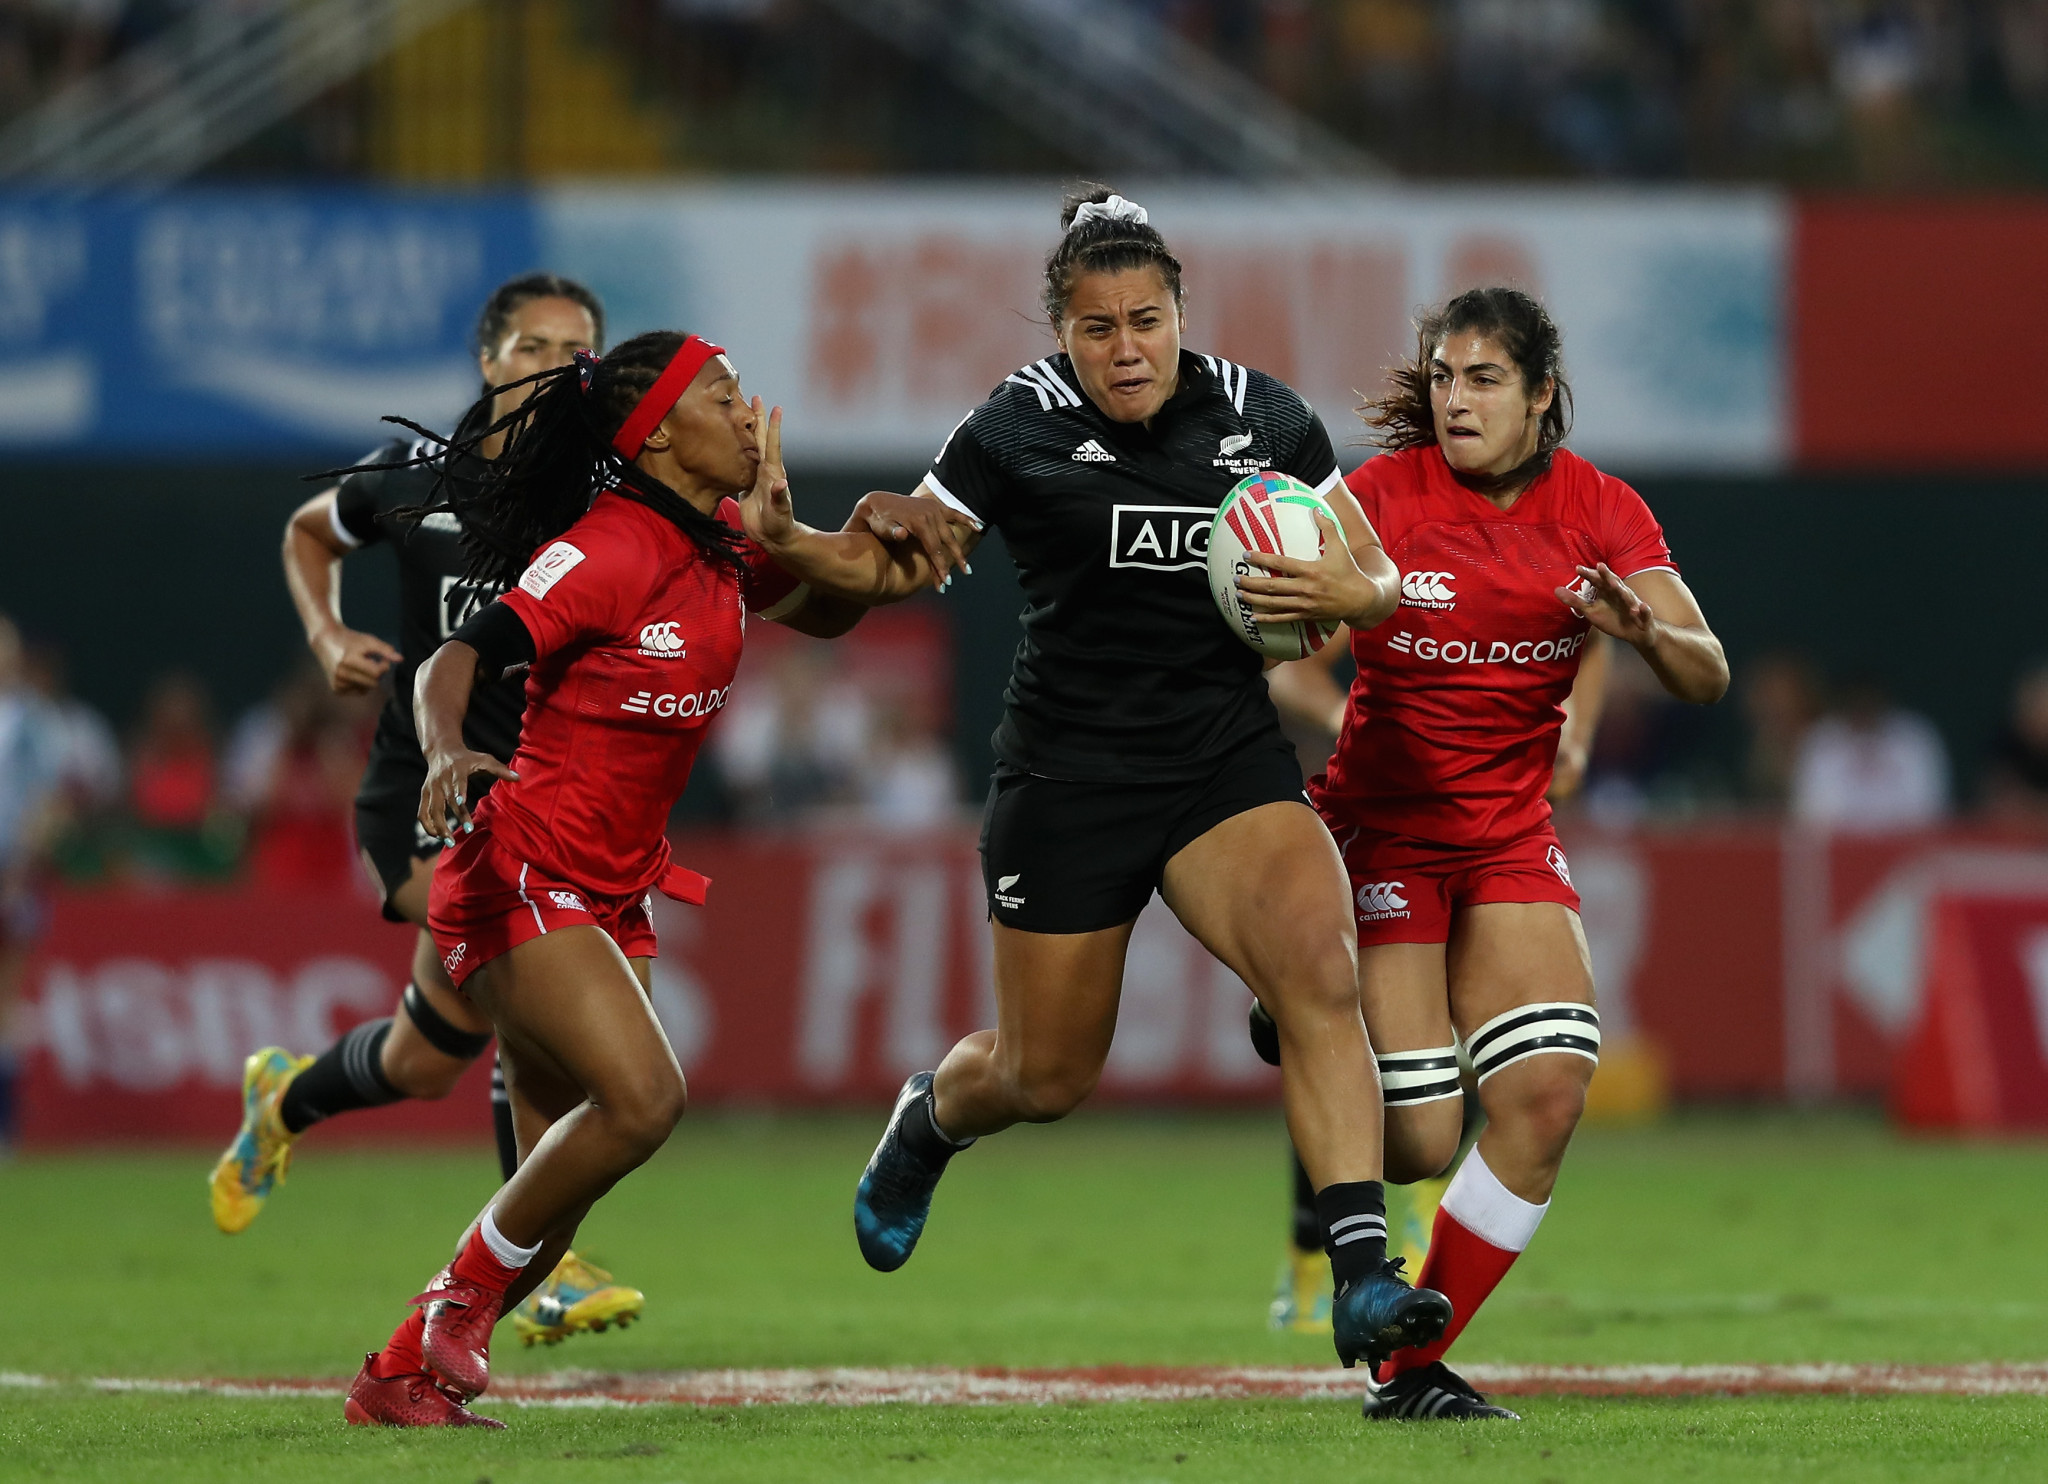 World Rugby Sevens Series circuit to include six combined men's and women's events for next four seasons